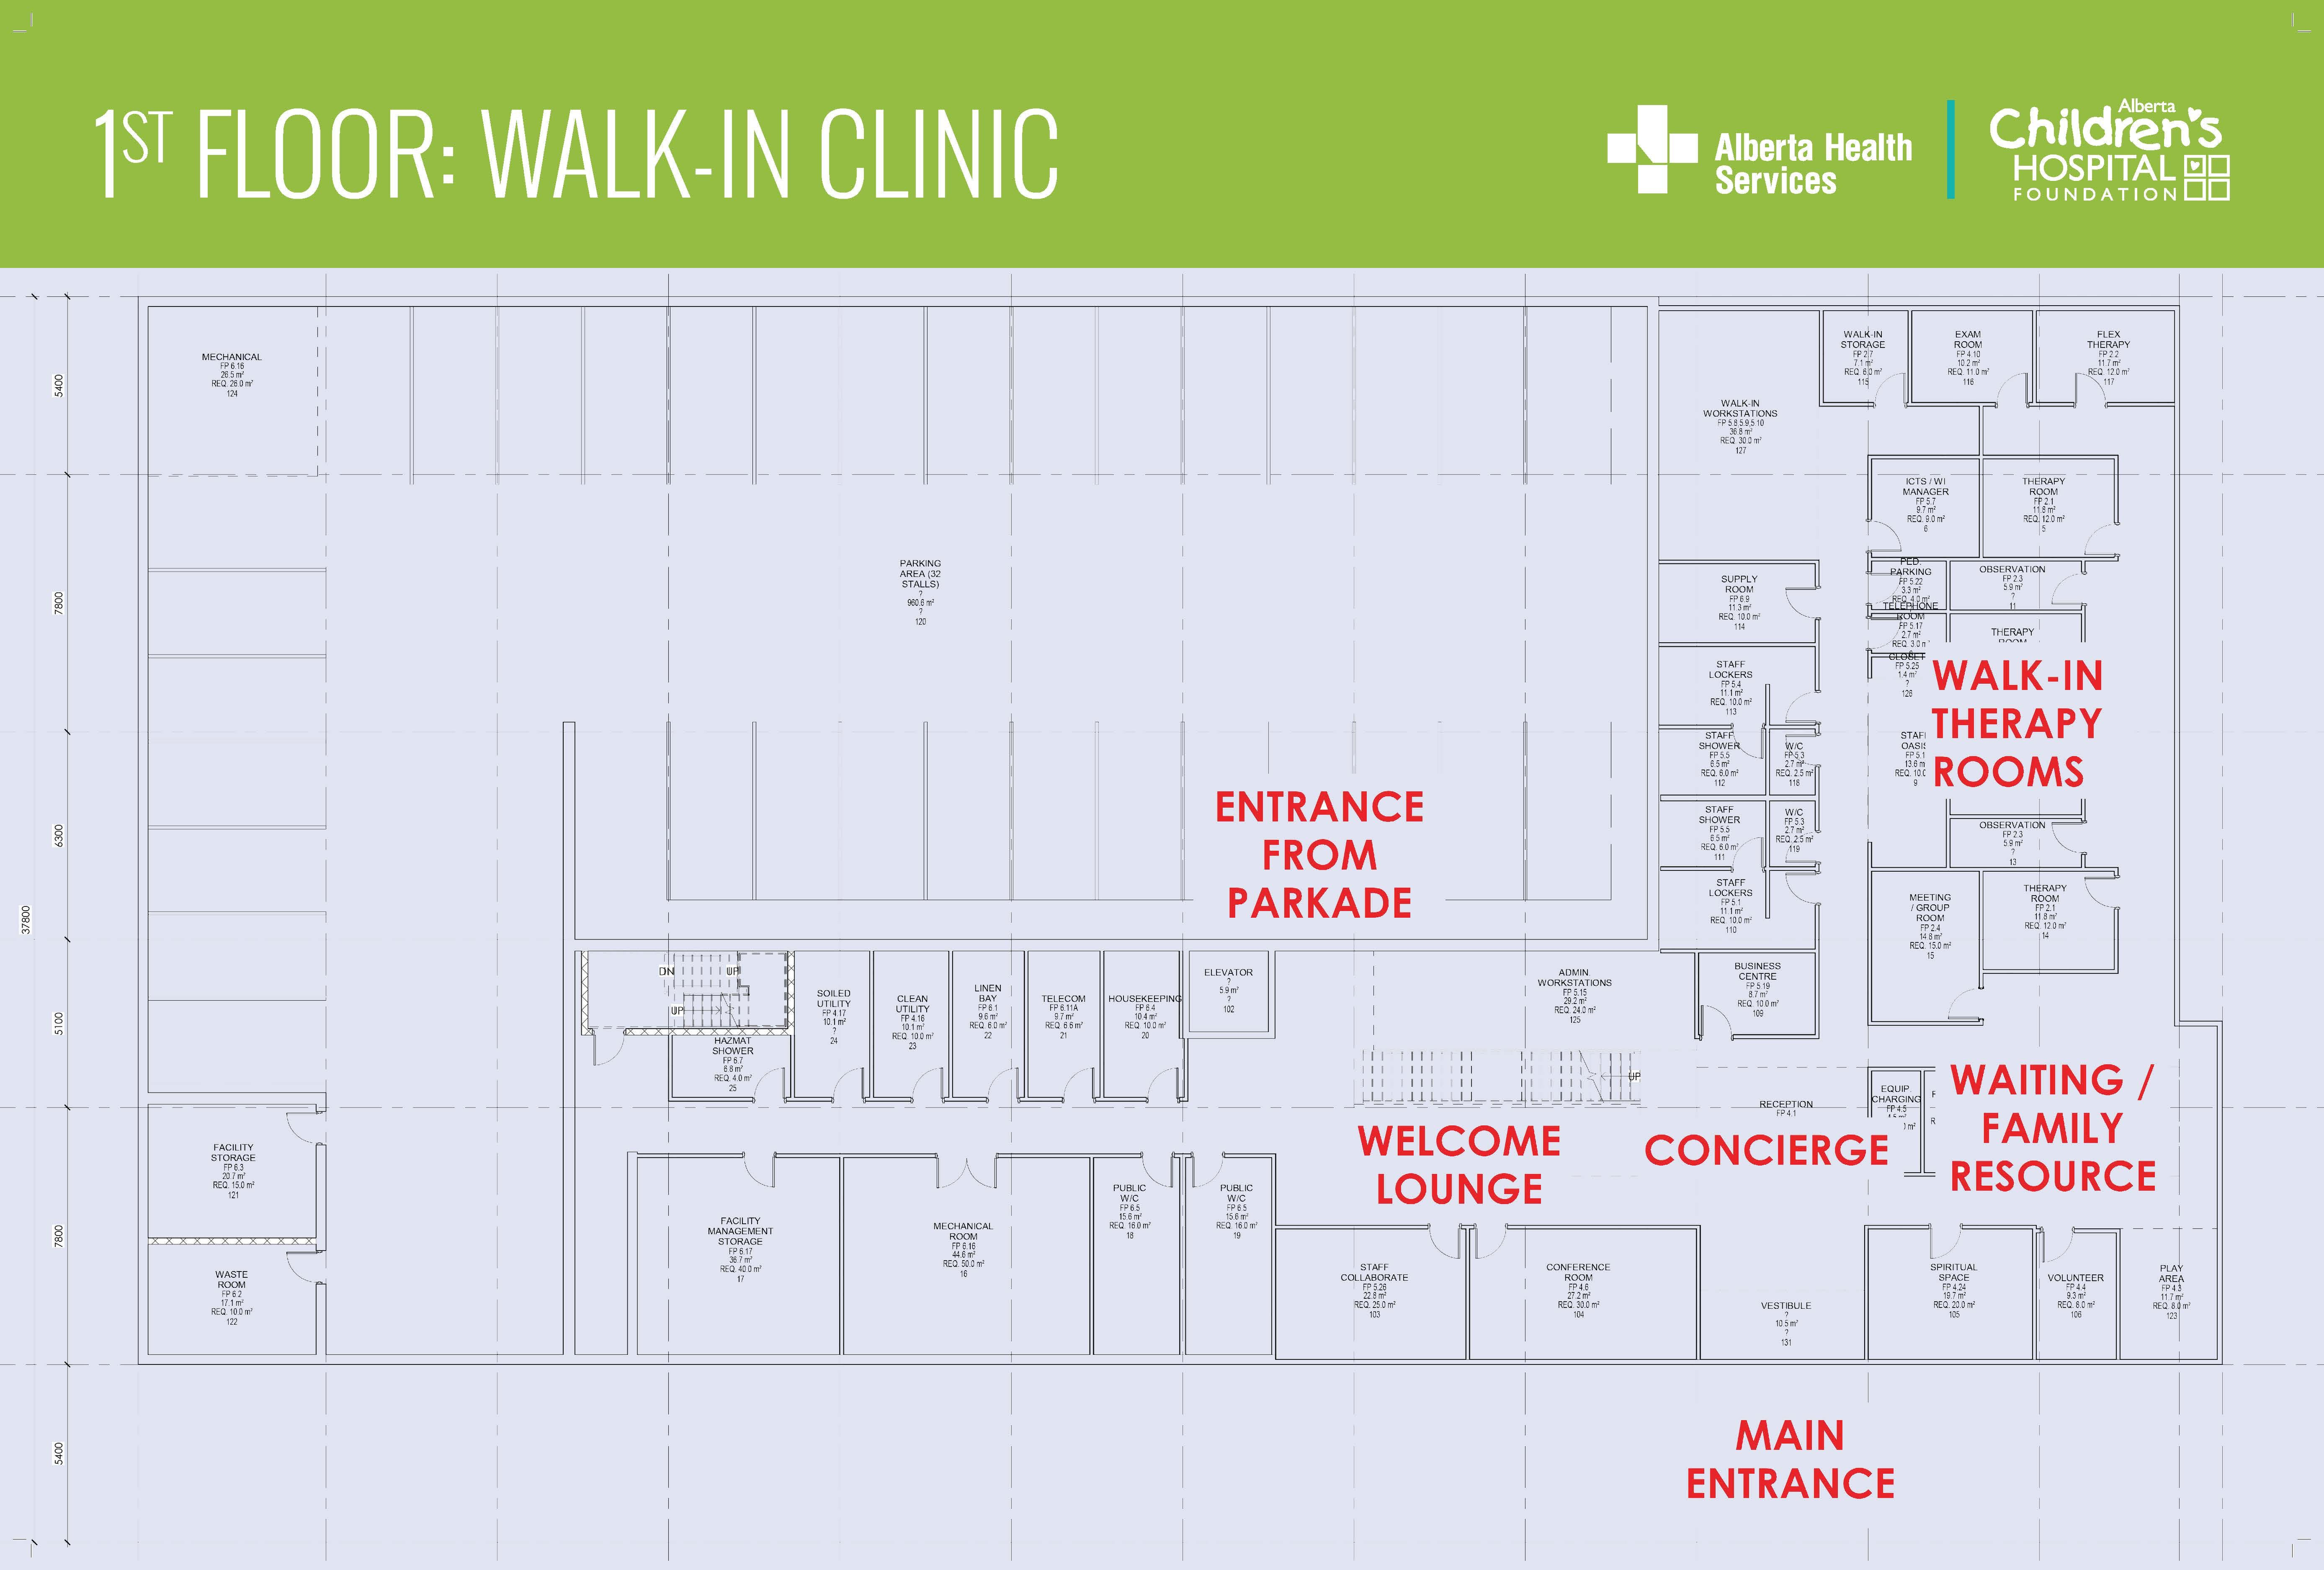 Walk-in clinic floor plan